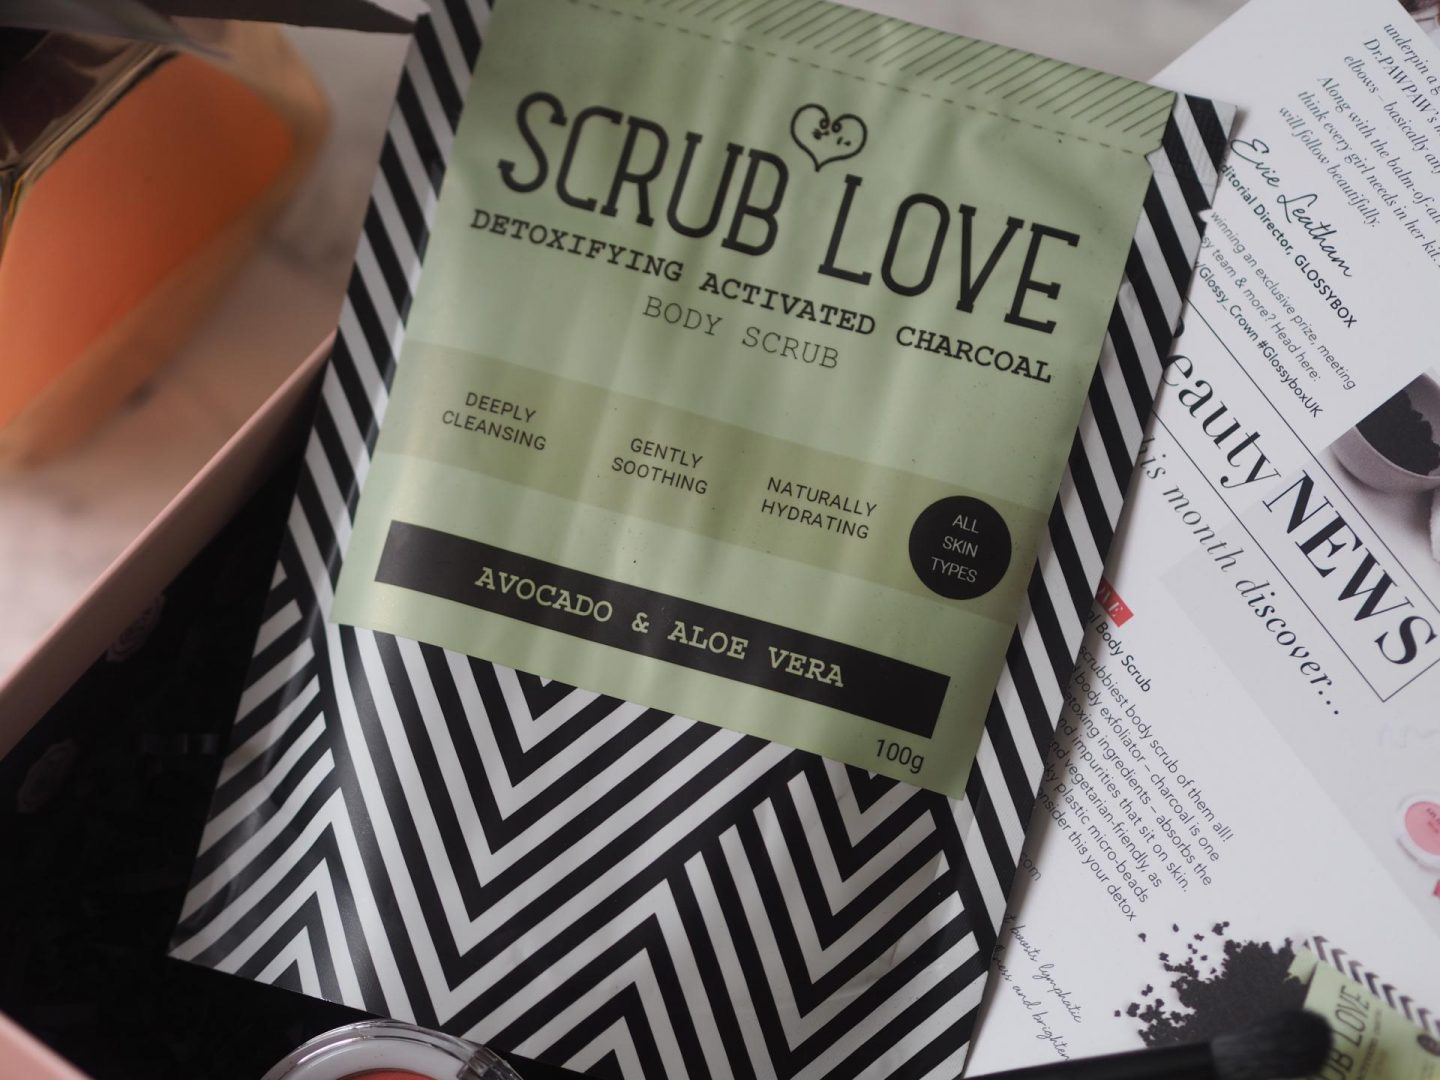 Scrub Love Active Charcoal Body Scrub